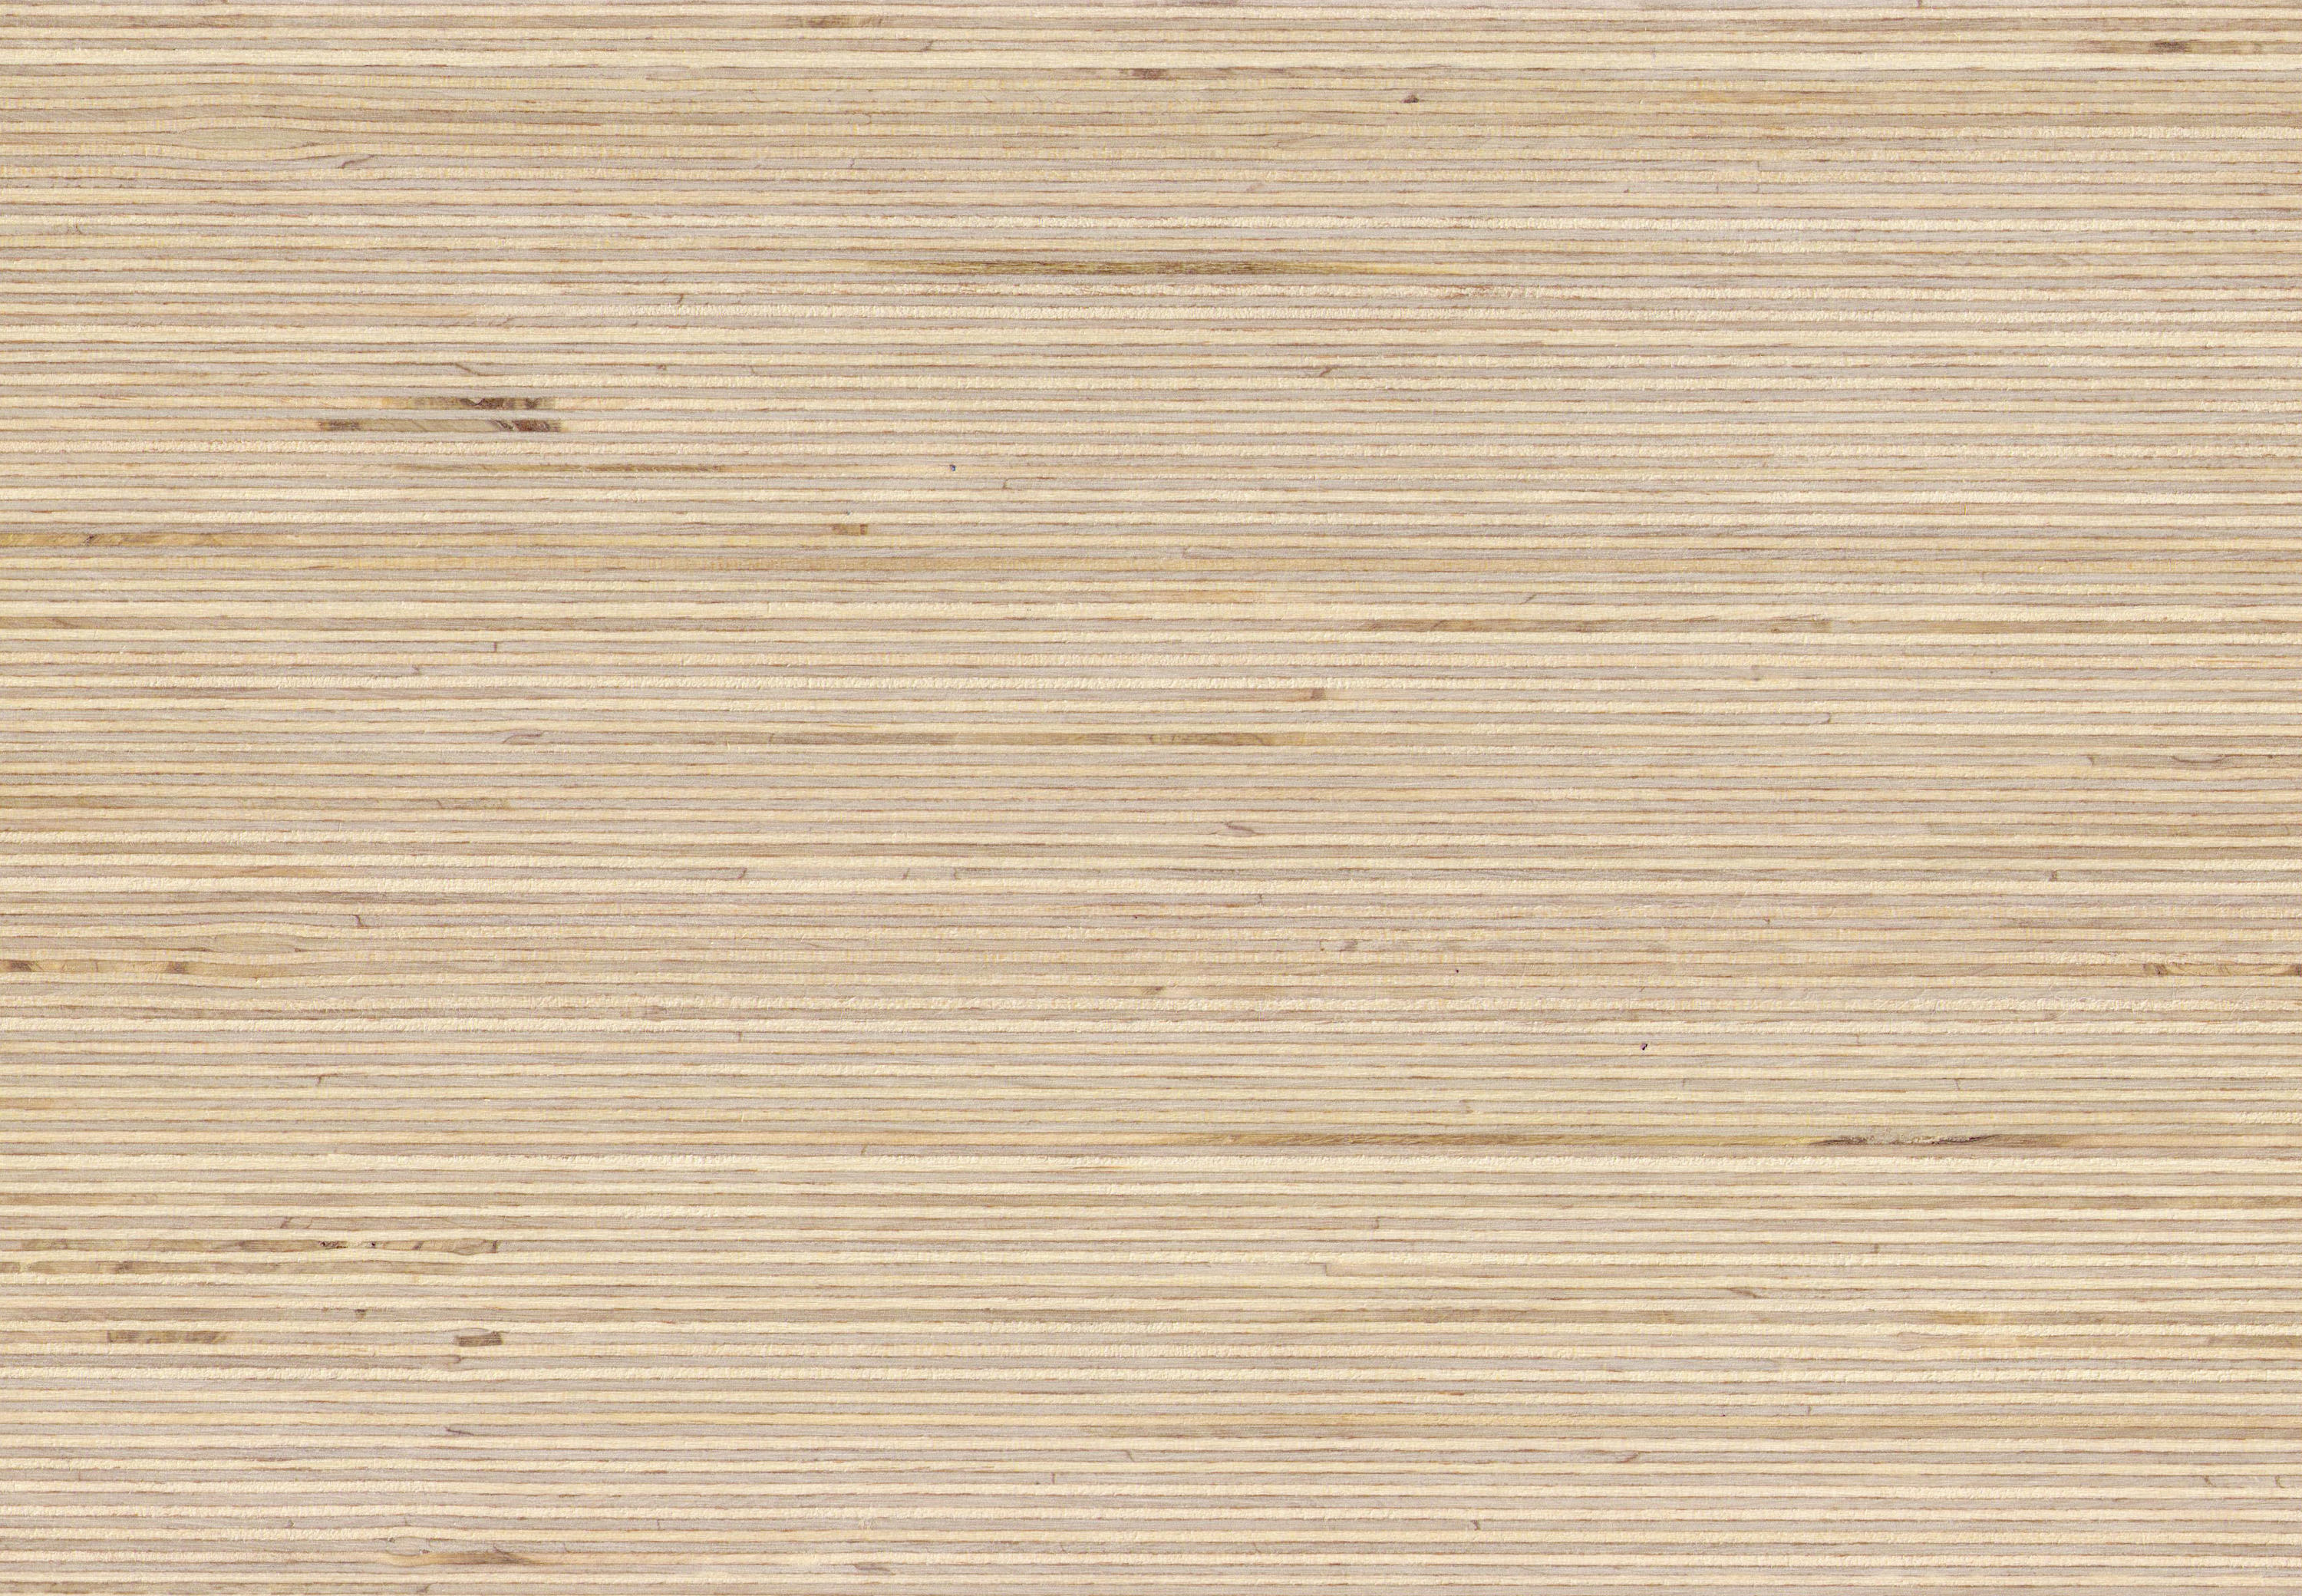 Plexwood Birch Wood Panels From Plexwood Architonic